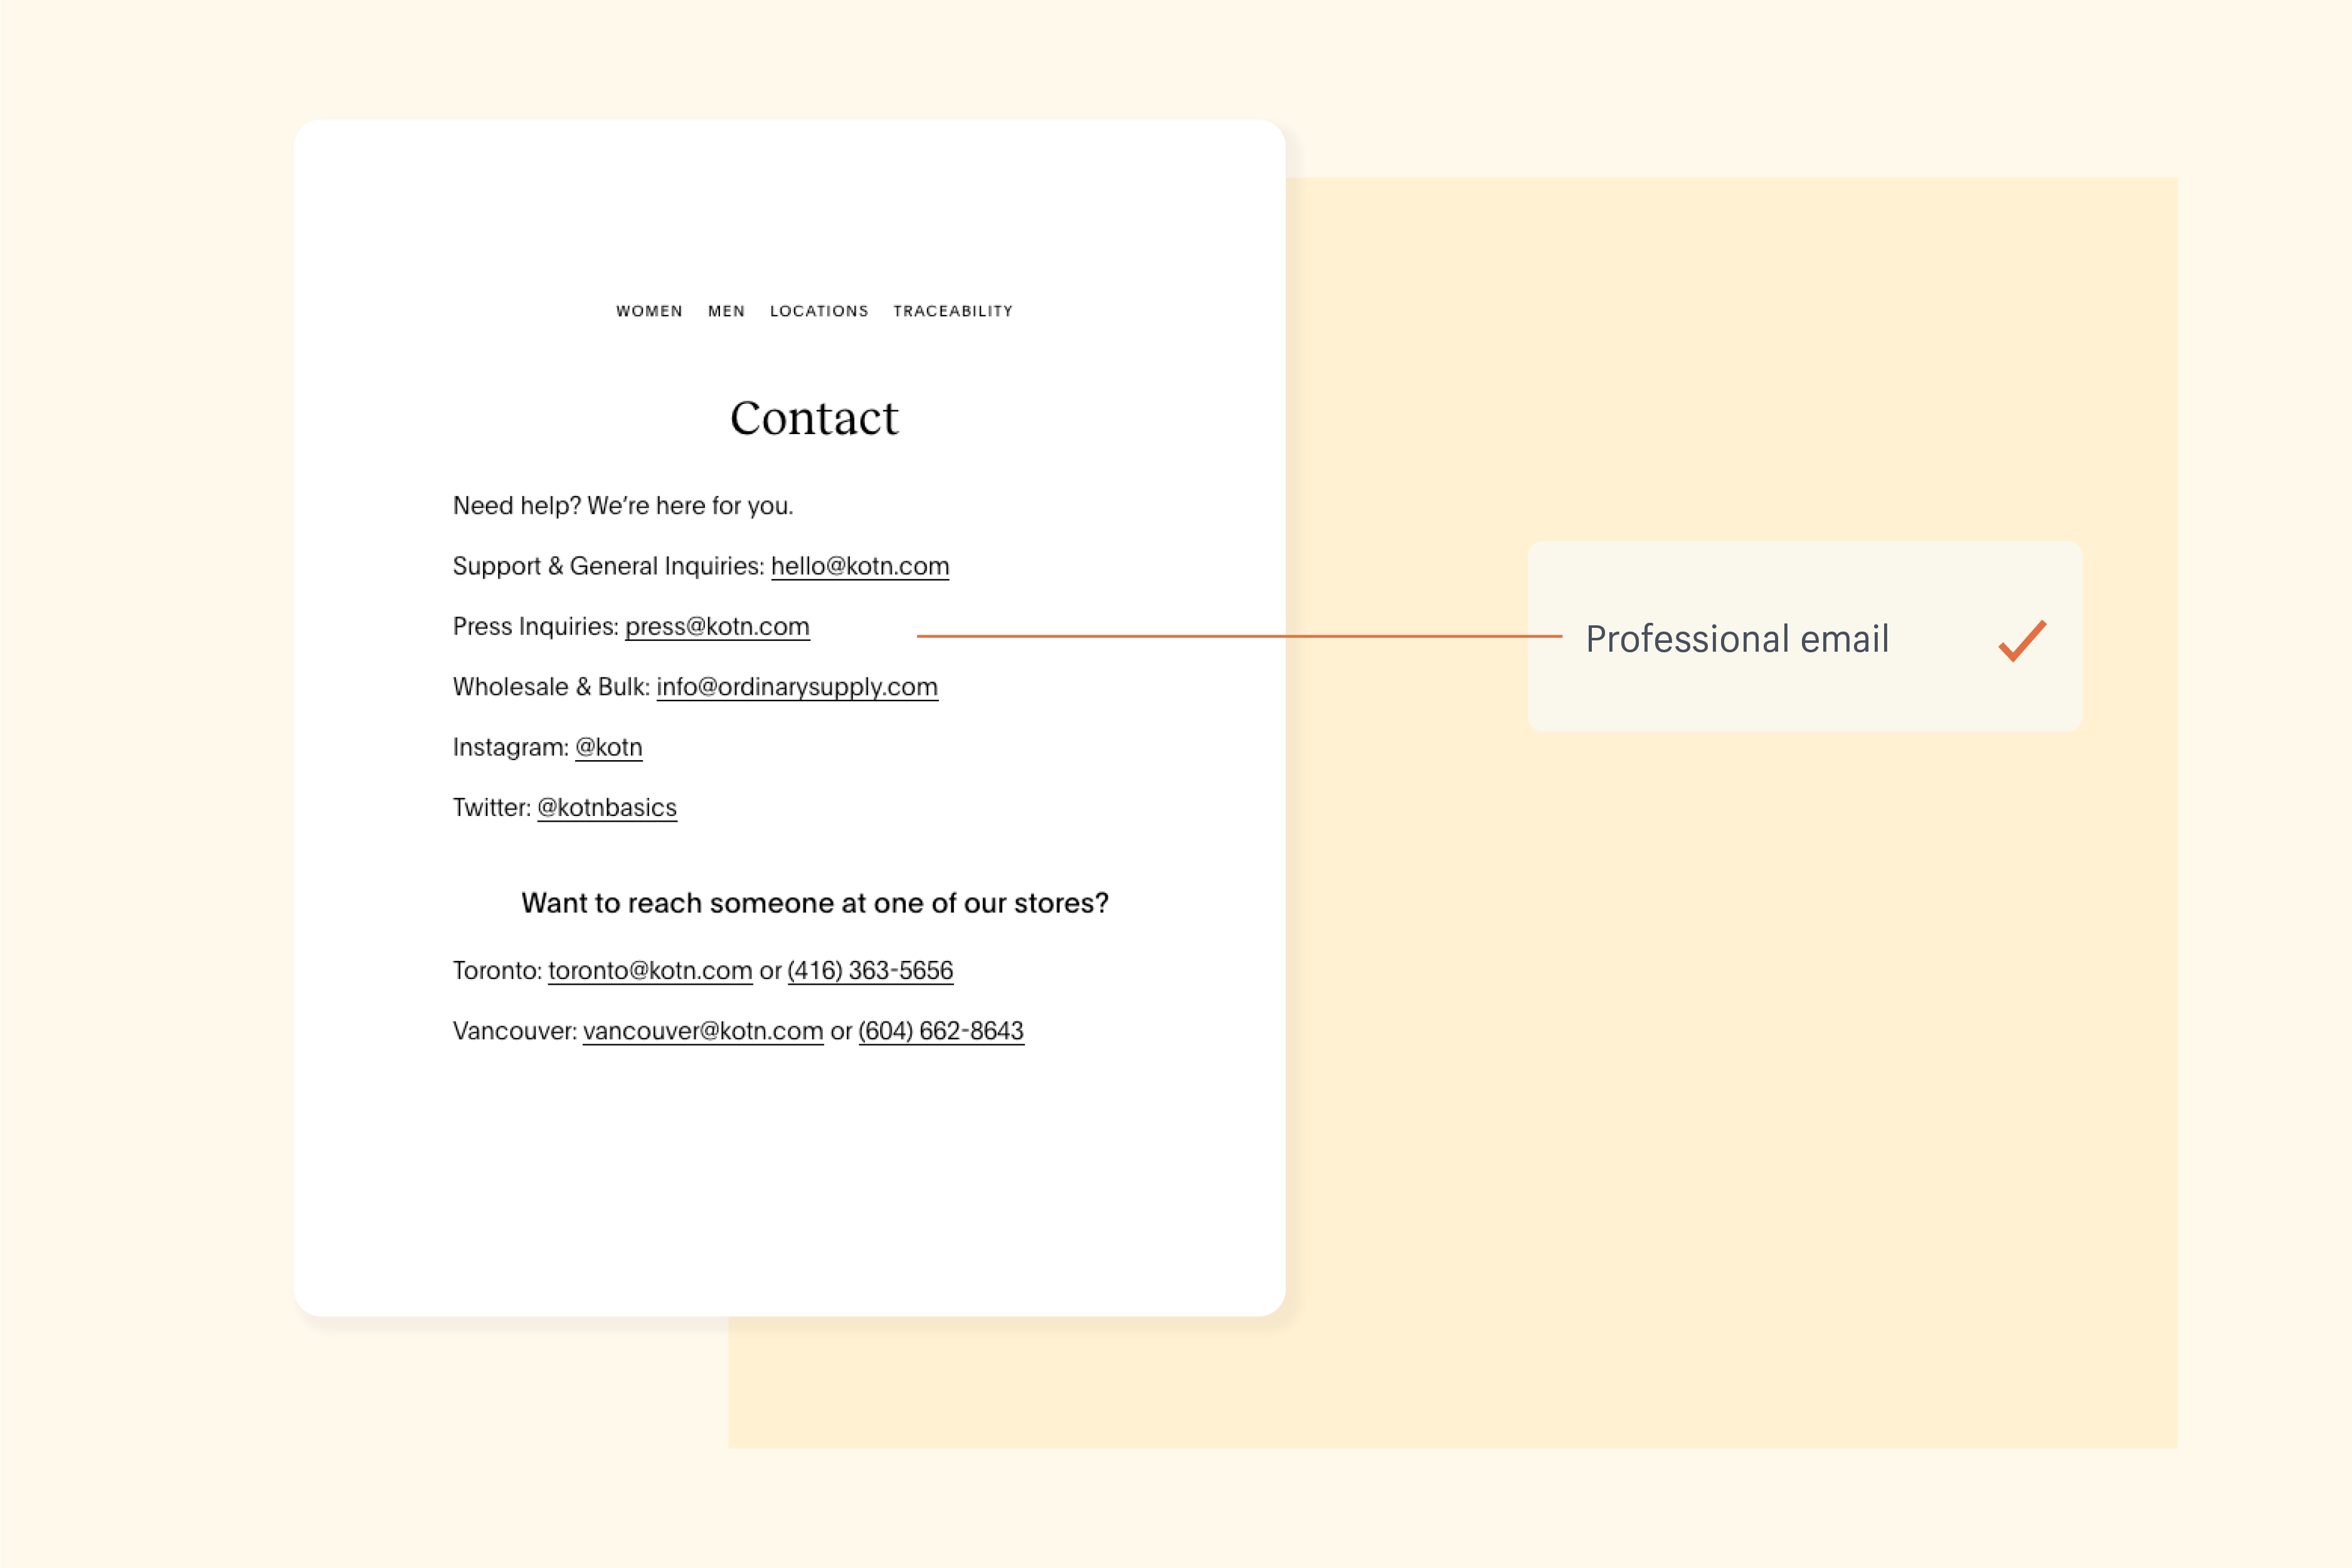 An example of Kotn's Contact page and how it builds customer trust with multiple customer support options